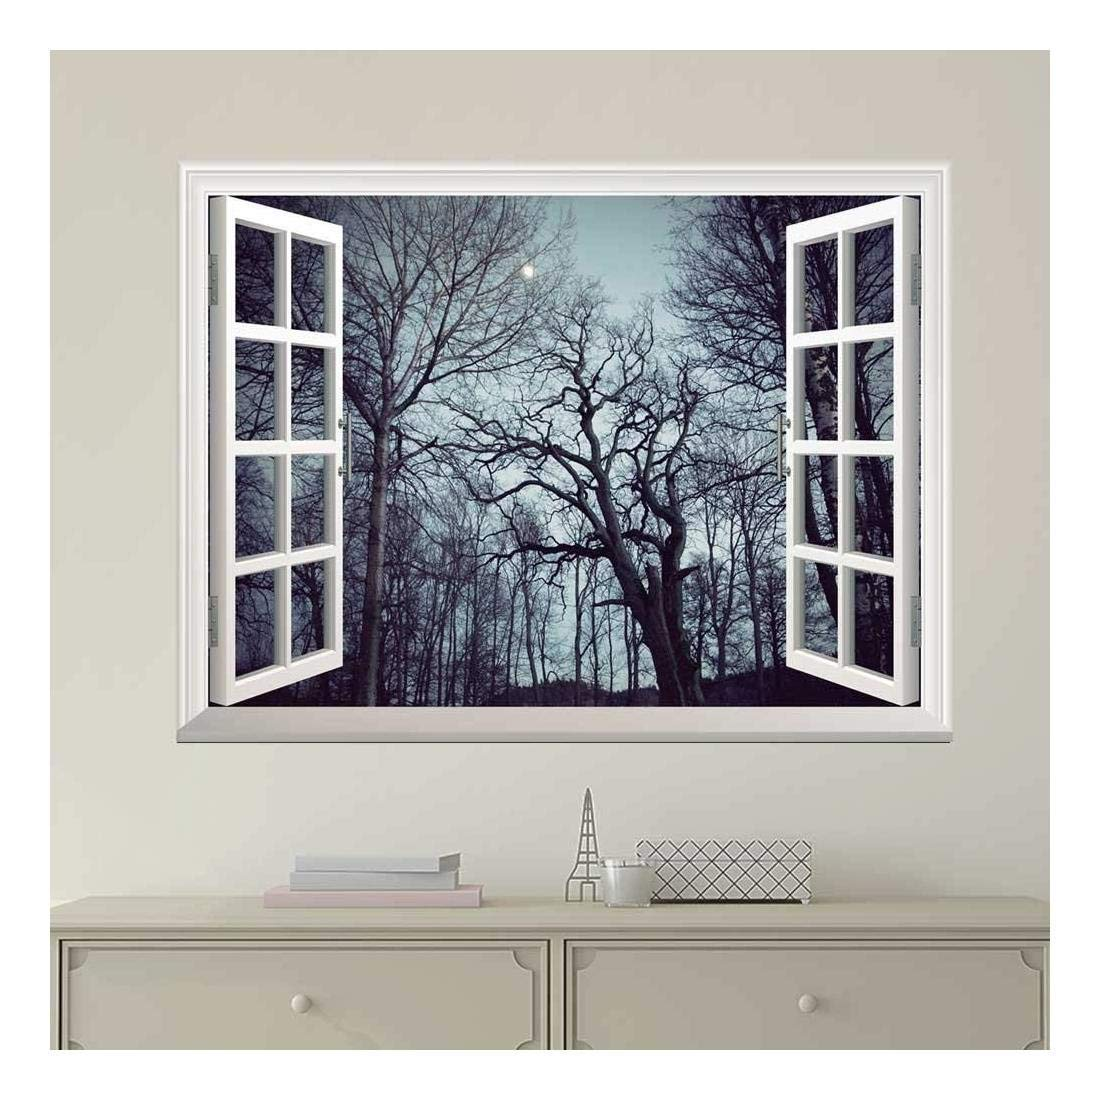 wall26 Modern White Window Looking Out Into a Forest with Trees Full of Branches - Wall Mural, Removable Sticker, Home Decor - 24x32 inches